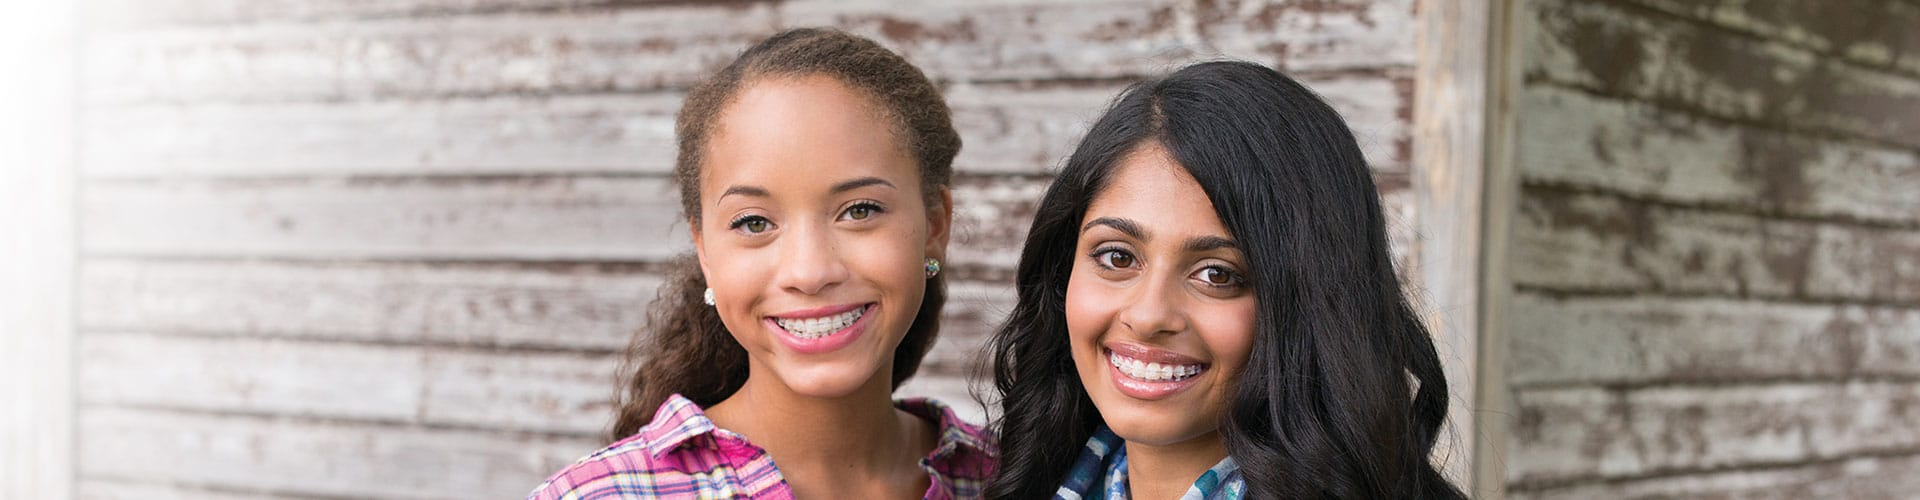 Clear Braces Orthodontic Specialists of St. Louis Creve Coeur St. Louis MO